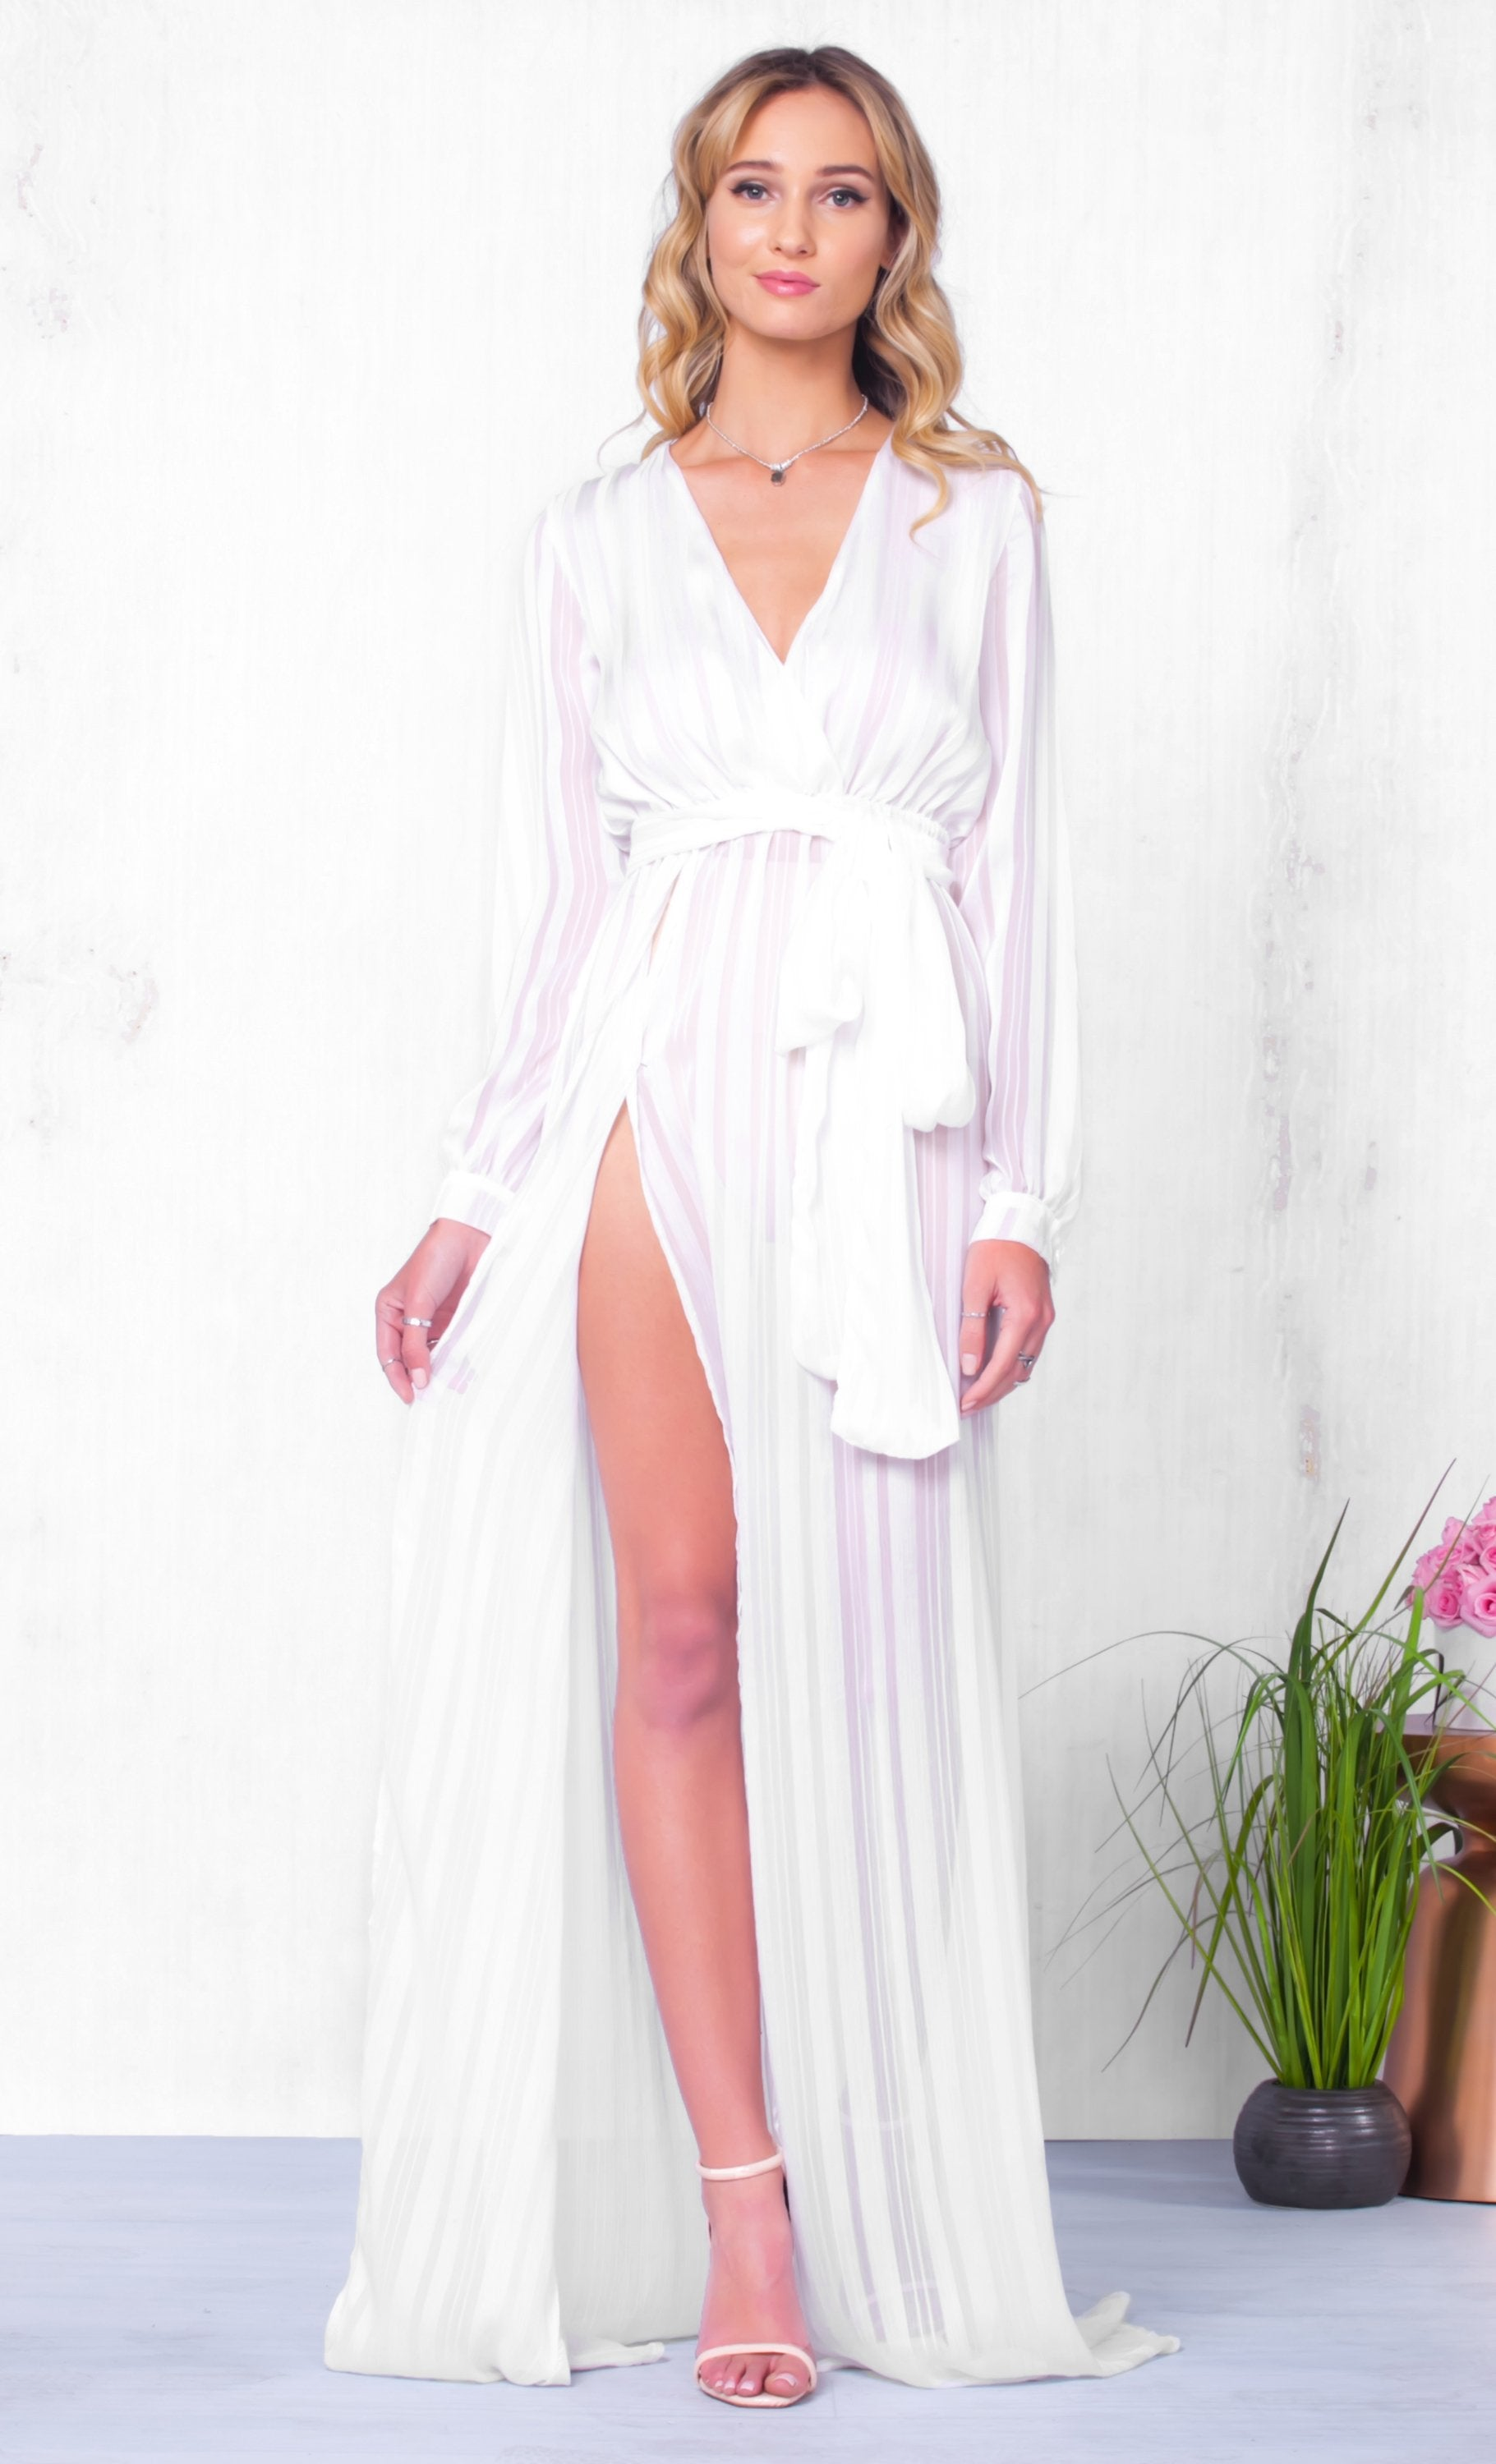 Indie XO Dream On White Loose Long Sleeve Cross Wrap V Neck Tie Waist High Slit Maxi Dress - Just Ours!